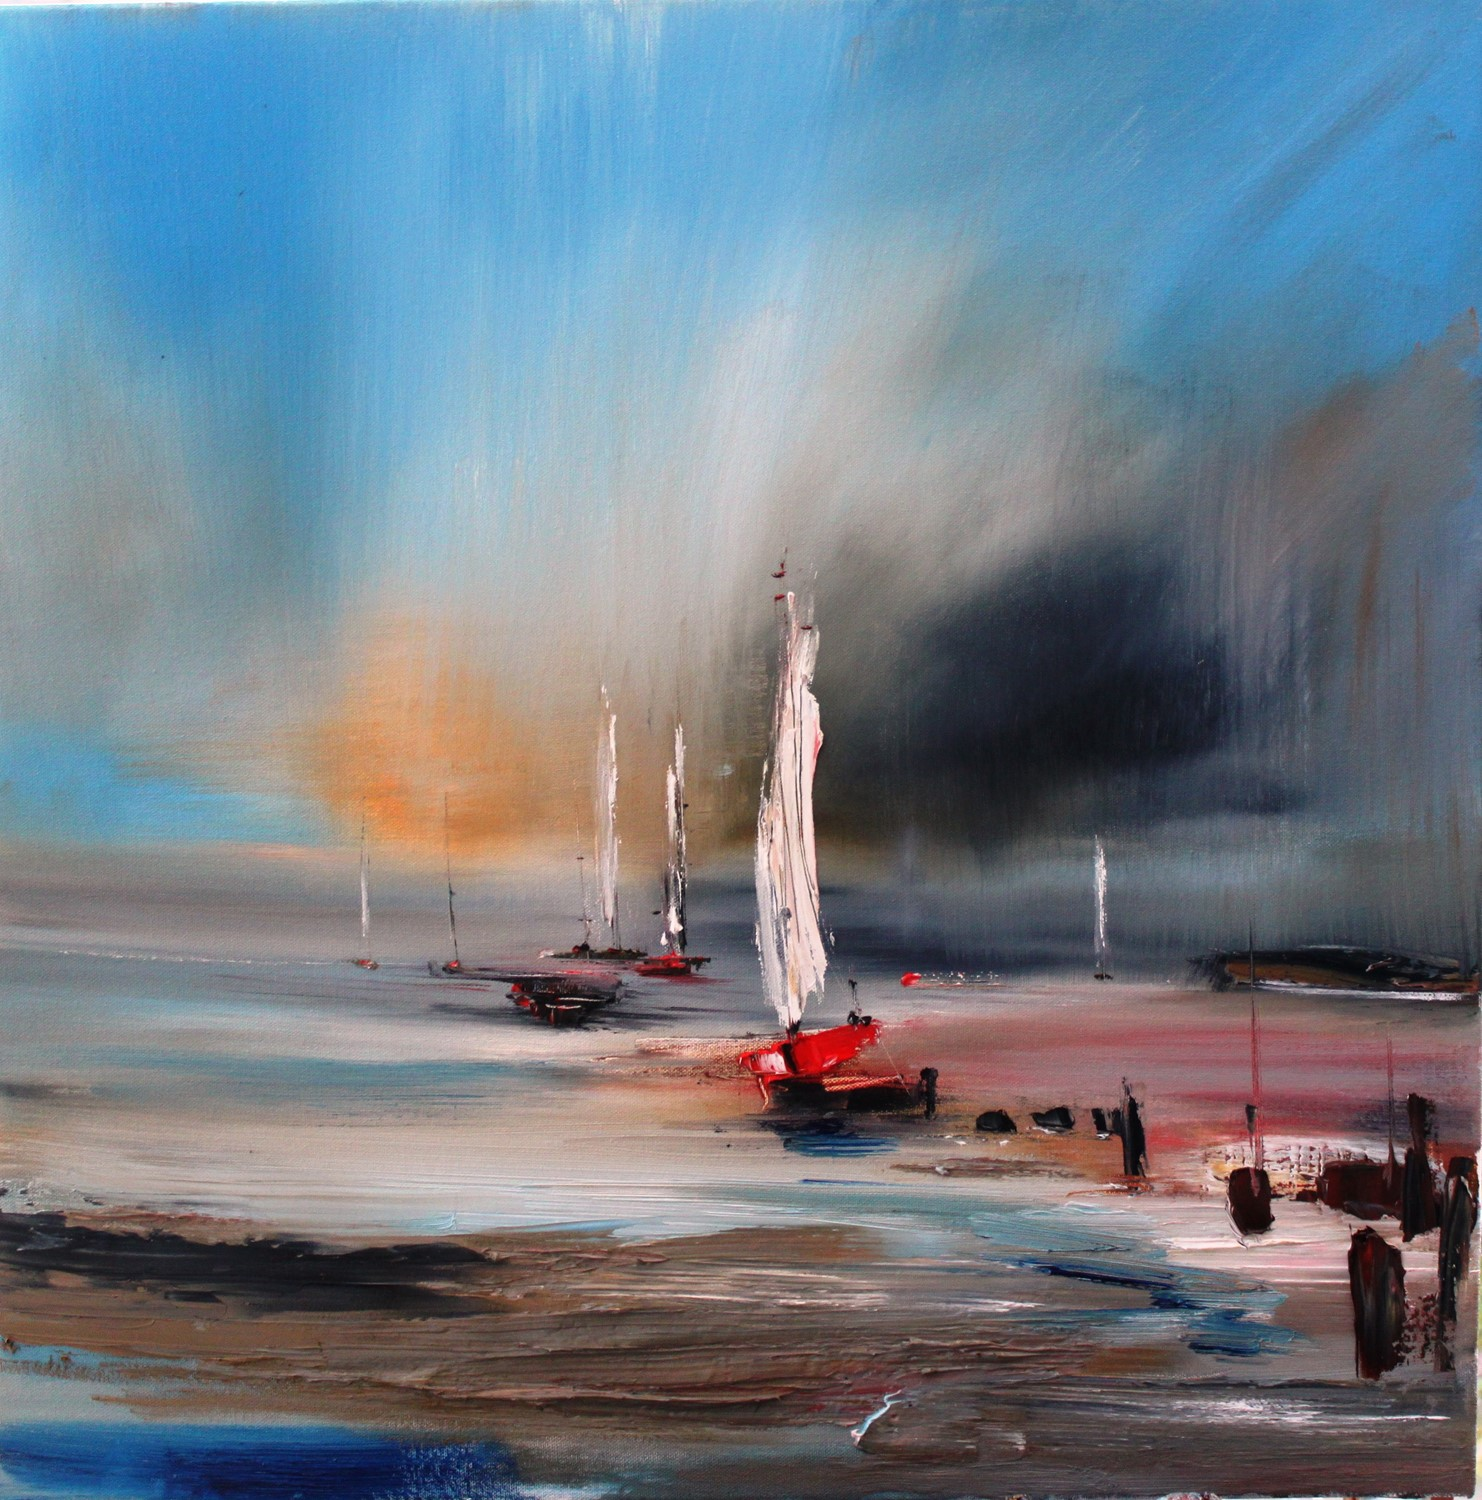 'Fleeting Sails' by artist Rosanne Barr